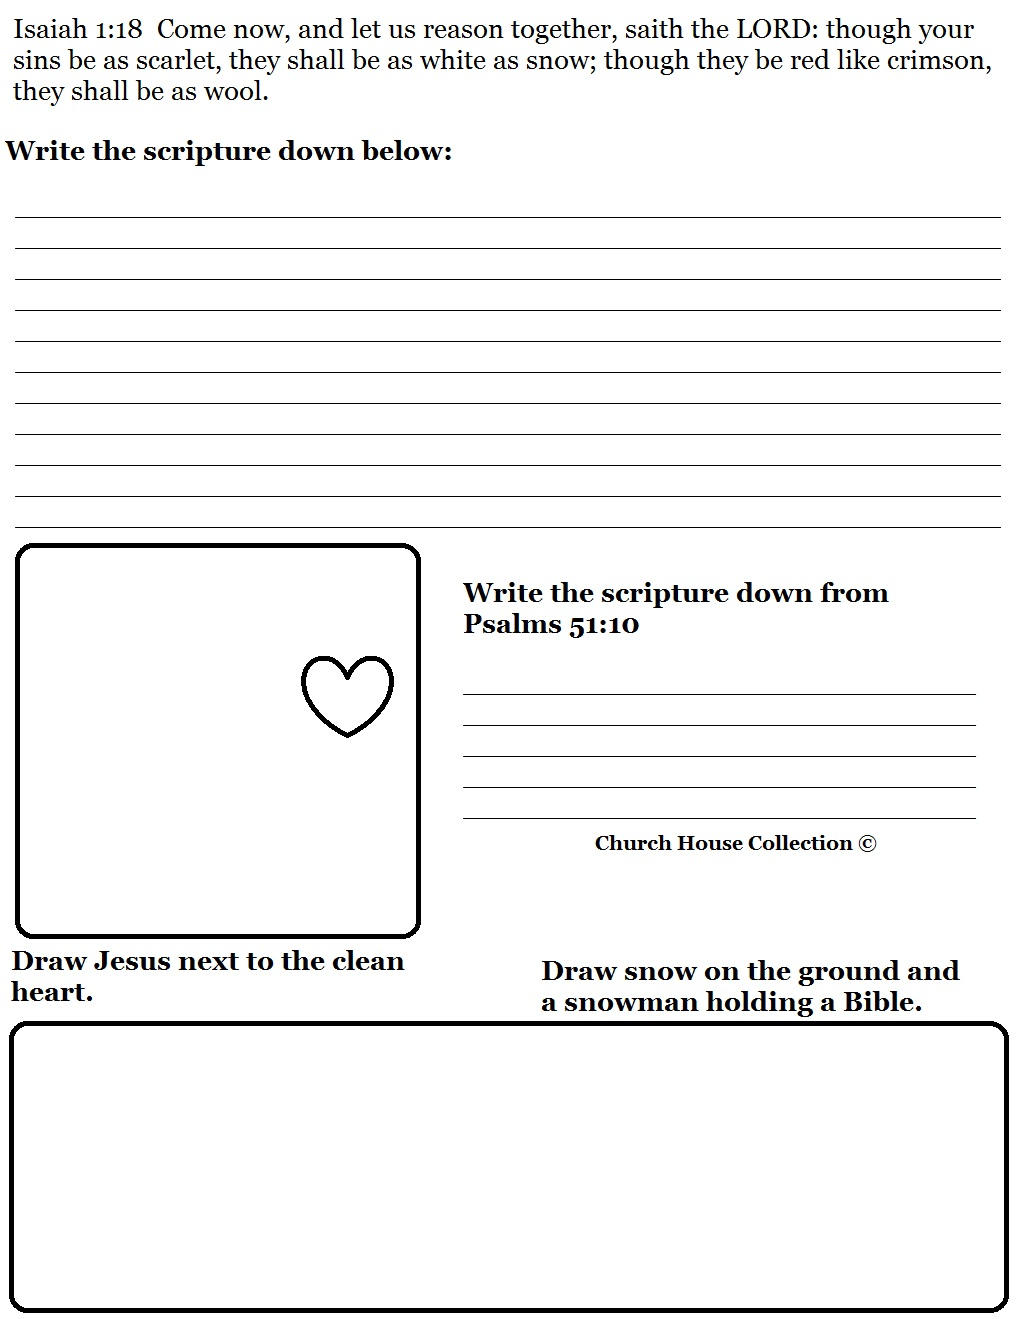 Free Christmas Snowman Activity Page Worksheet Printable Template For Kids in Sunday School by Church House Collection. Use with our Free Christmas Sunday school Lessons. Draw snow and a snowman holding a bible. Look up the scirpture from Psalms 51:10 and write it down. Fun Christmas church worksheets for preschool kids or toddlers.